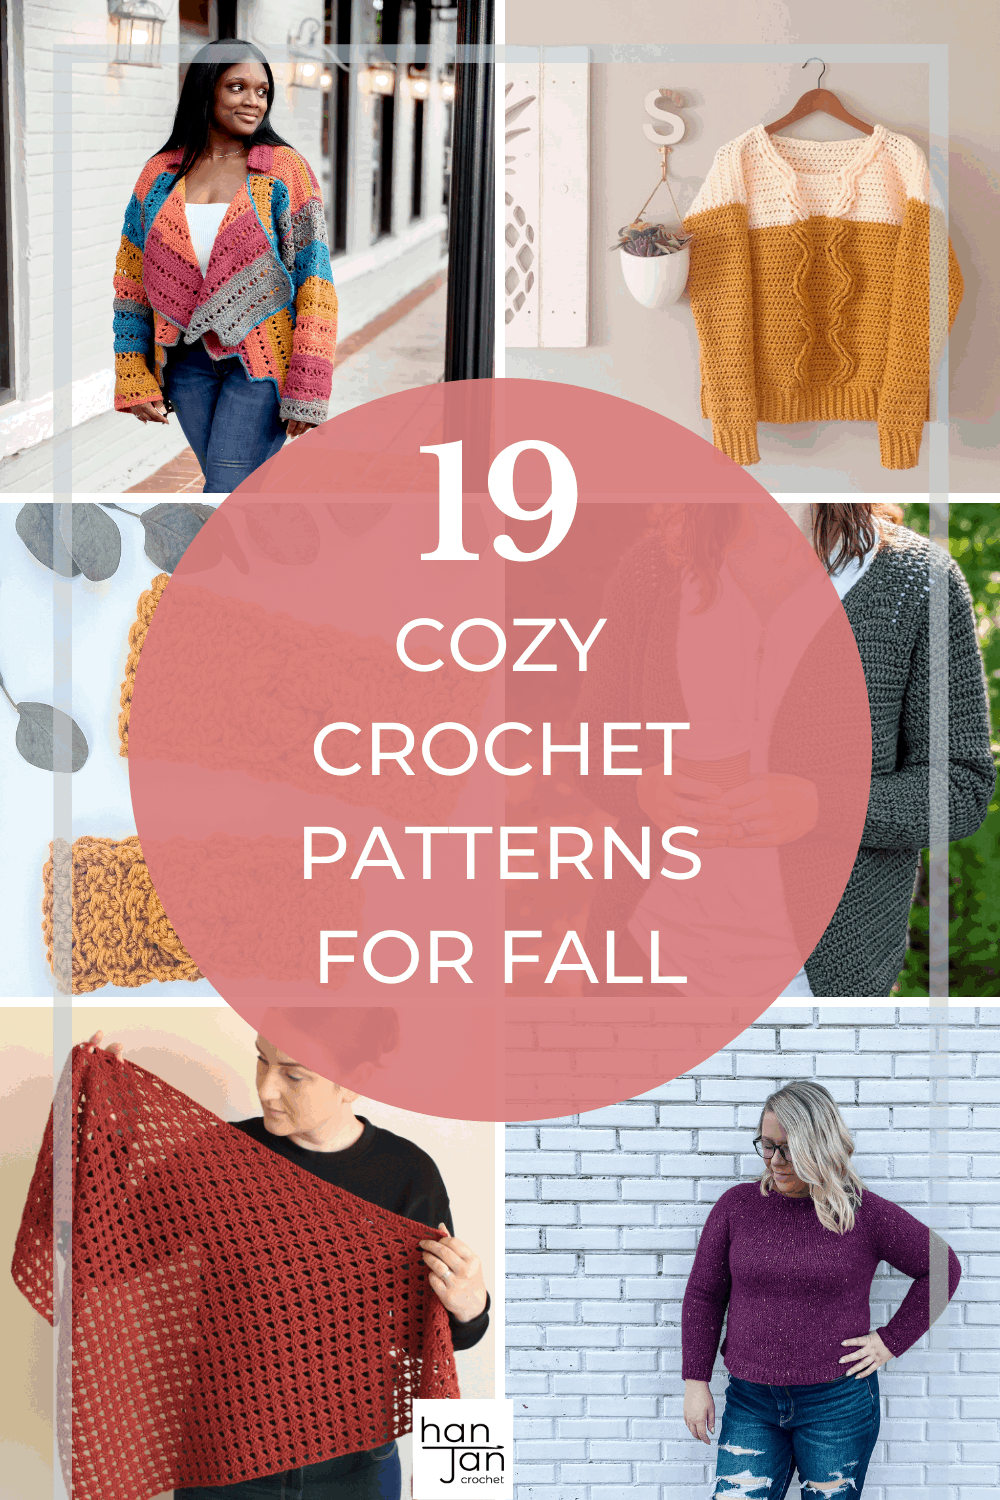 cozy crochet patterns including jumpers, cardigans and shawls